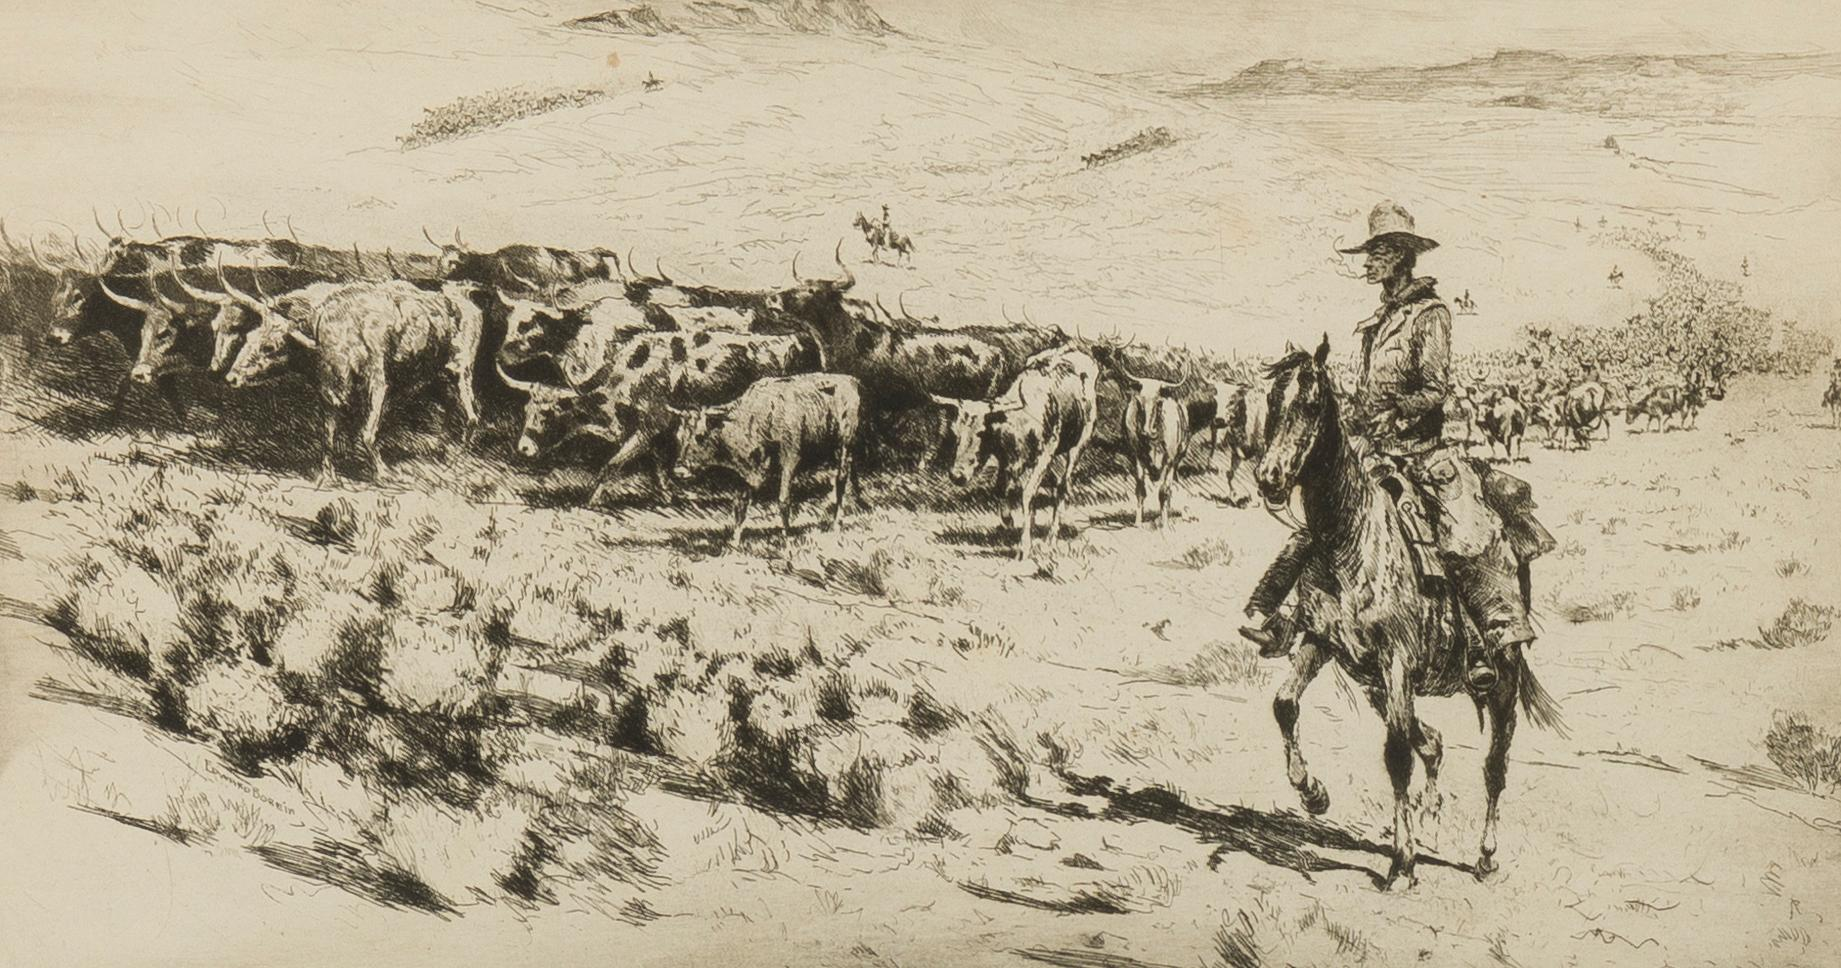 """Edward Borein, (1872-1945 Santa Barbara, CA), """"Trail Herd No. 2"""", Etching and drypoint on paper under glass, Plate: 7"""" H x 12.75"""" W"""